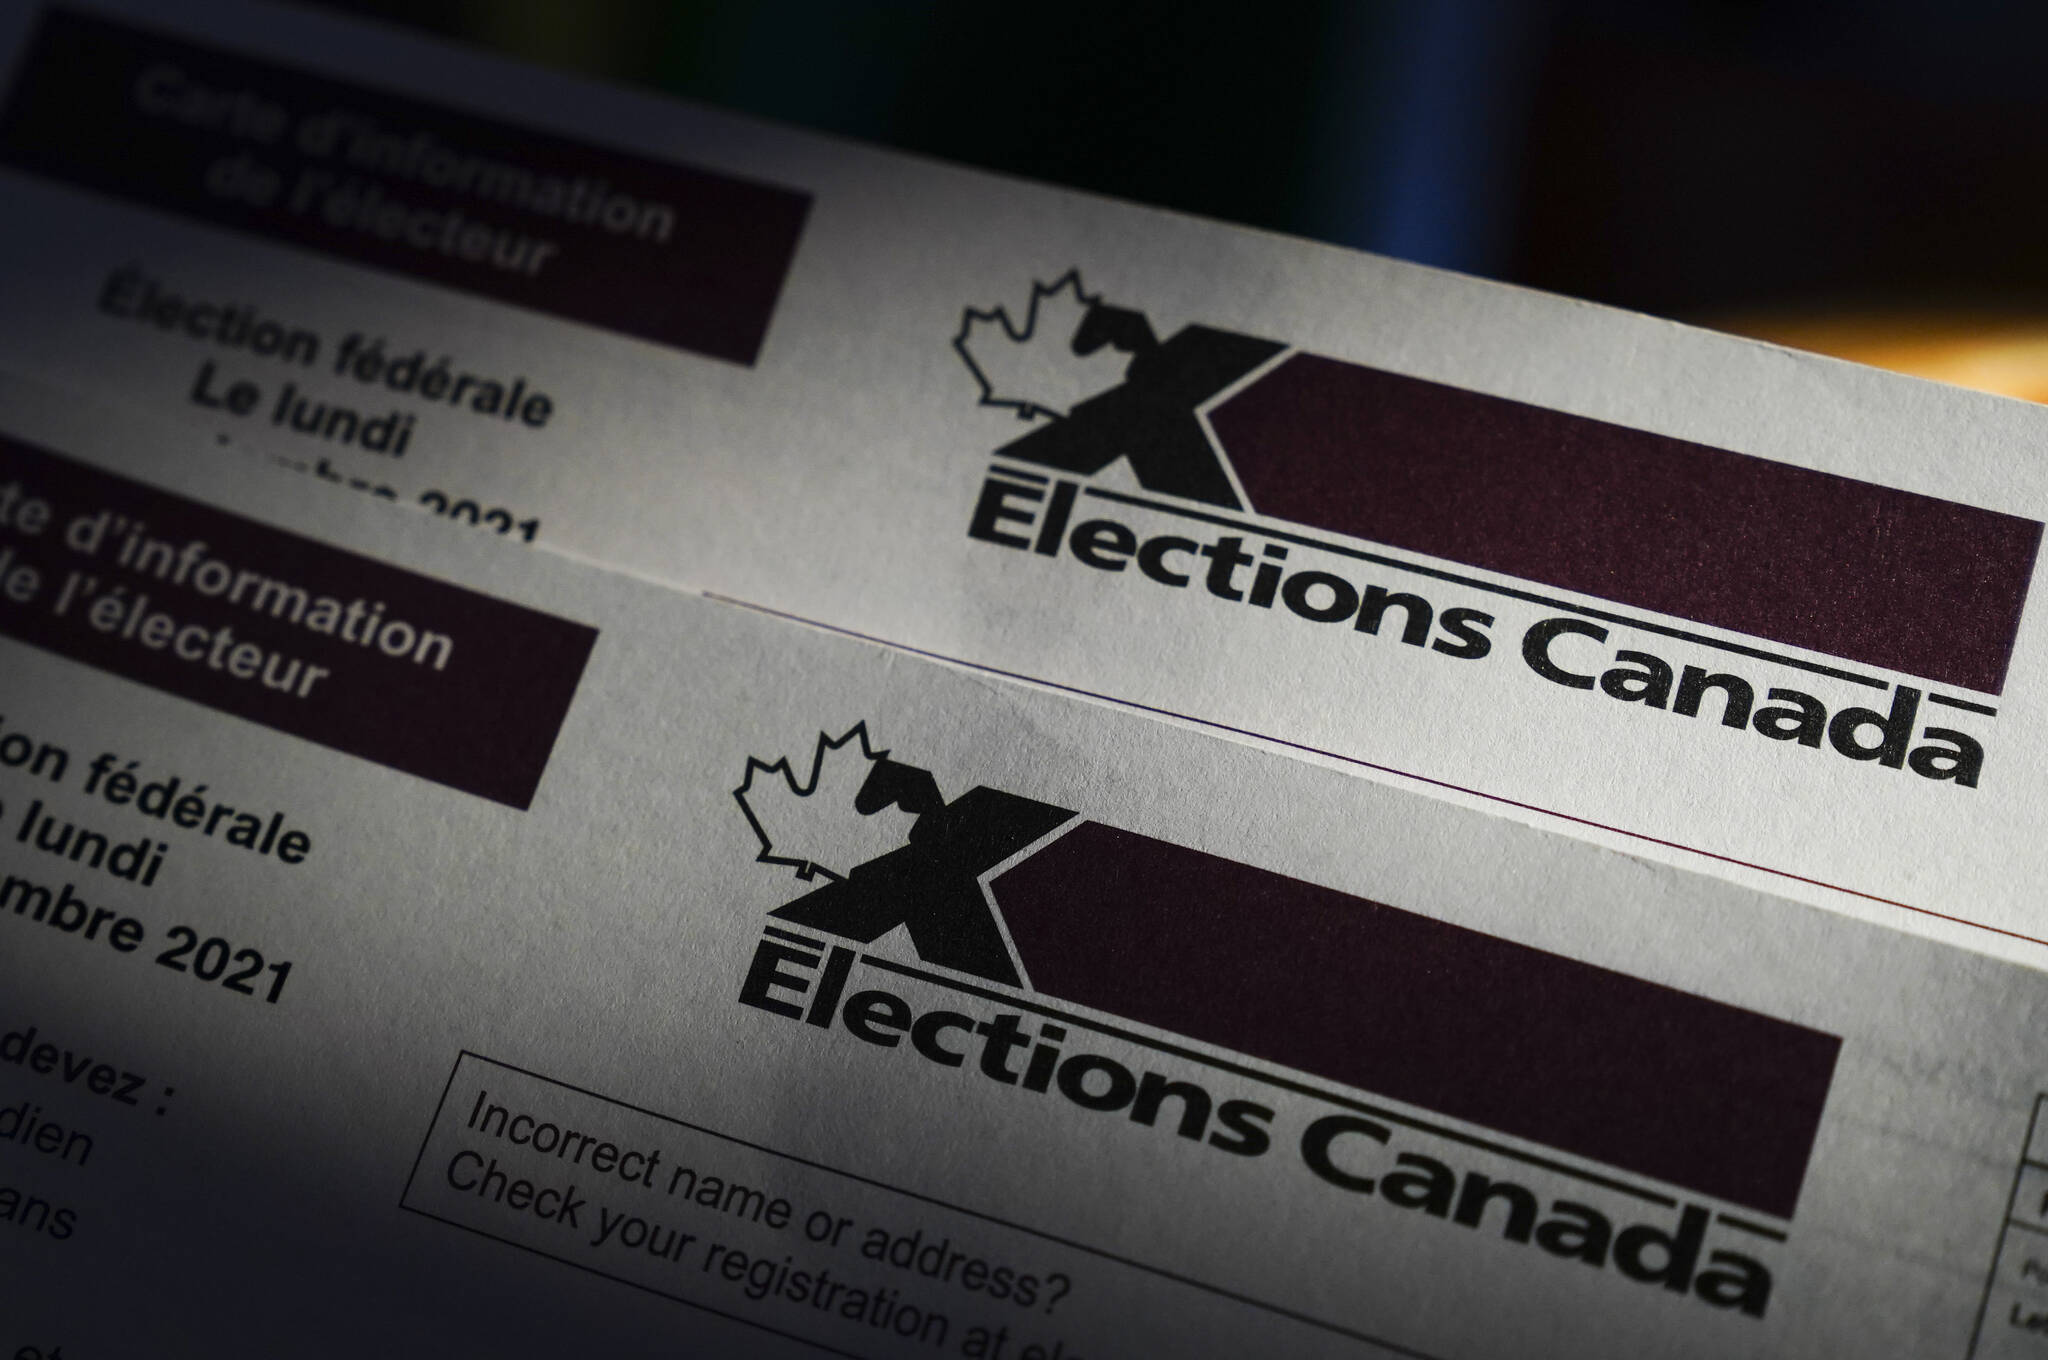 An Elections Canada voter information card is shown on Tuesday, Aug 31, 2021. Canadians are at the polls for the federal election today, September 20, 2021. THE CANADIAN PRESS/Sean Kilpatrick